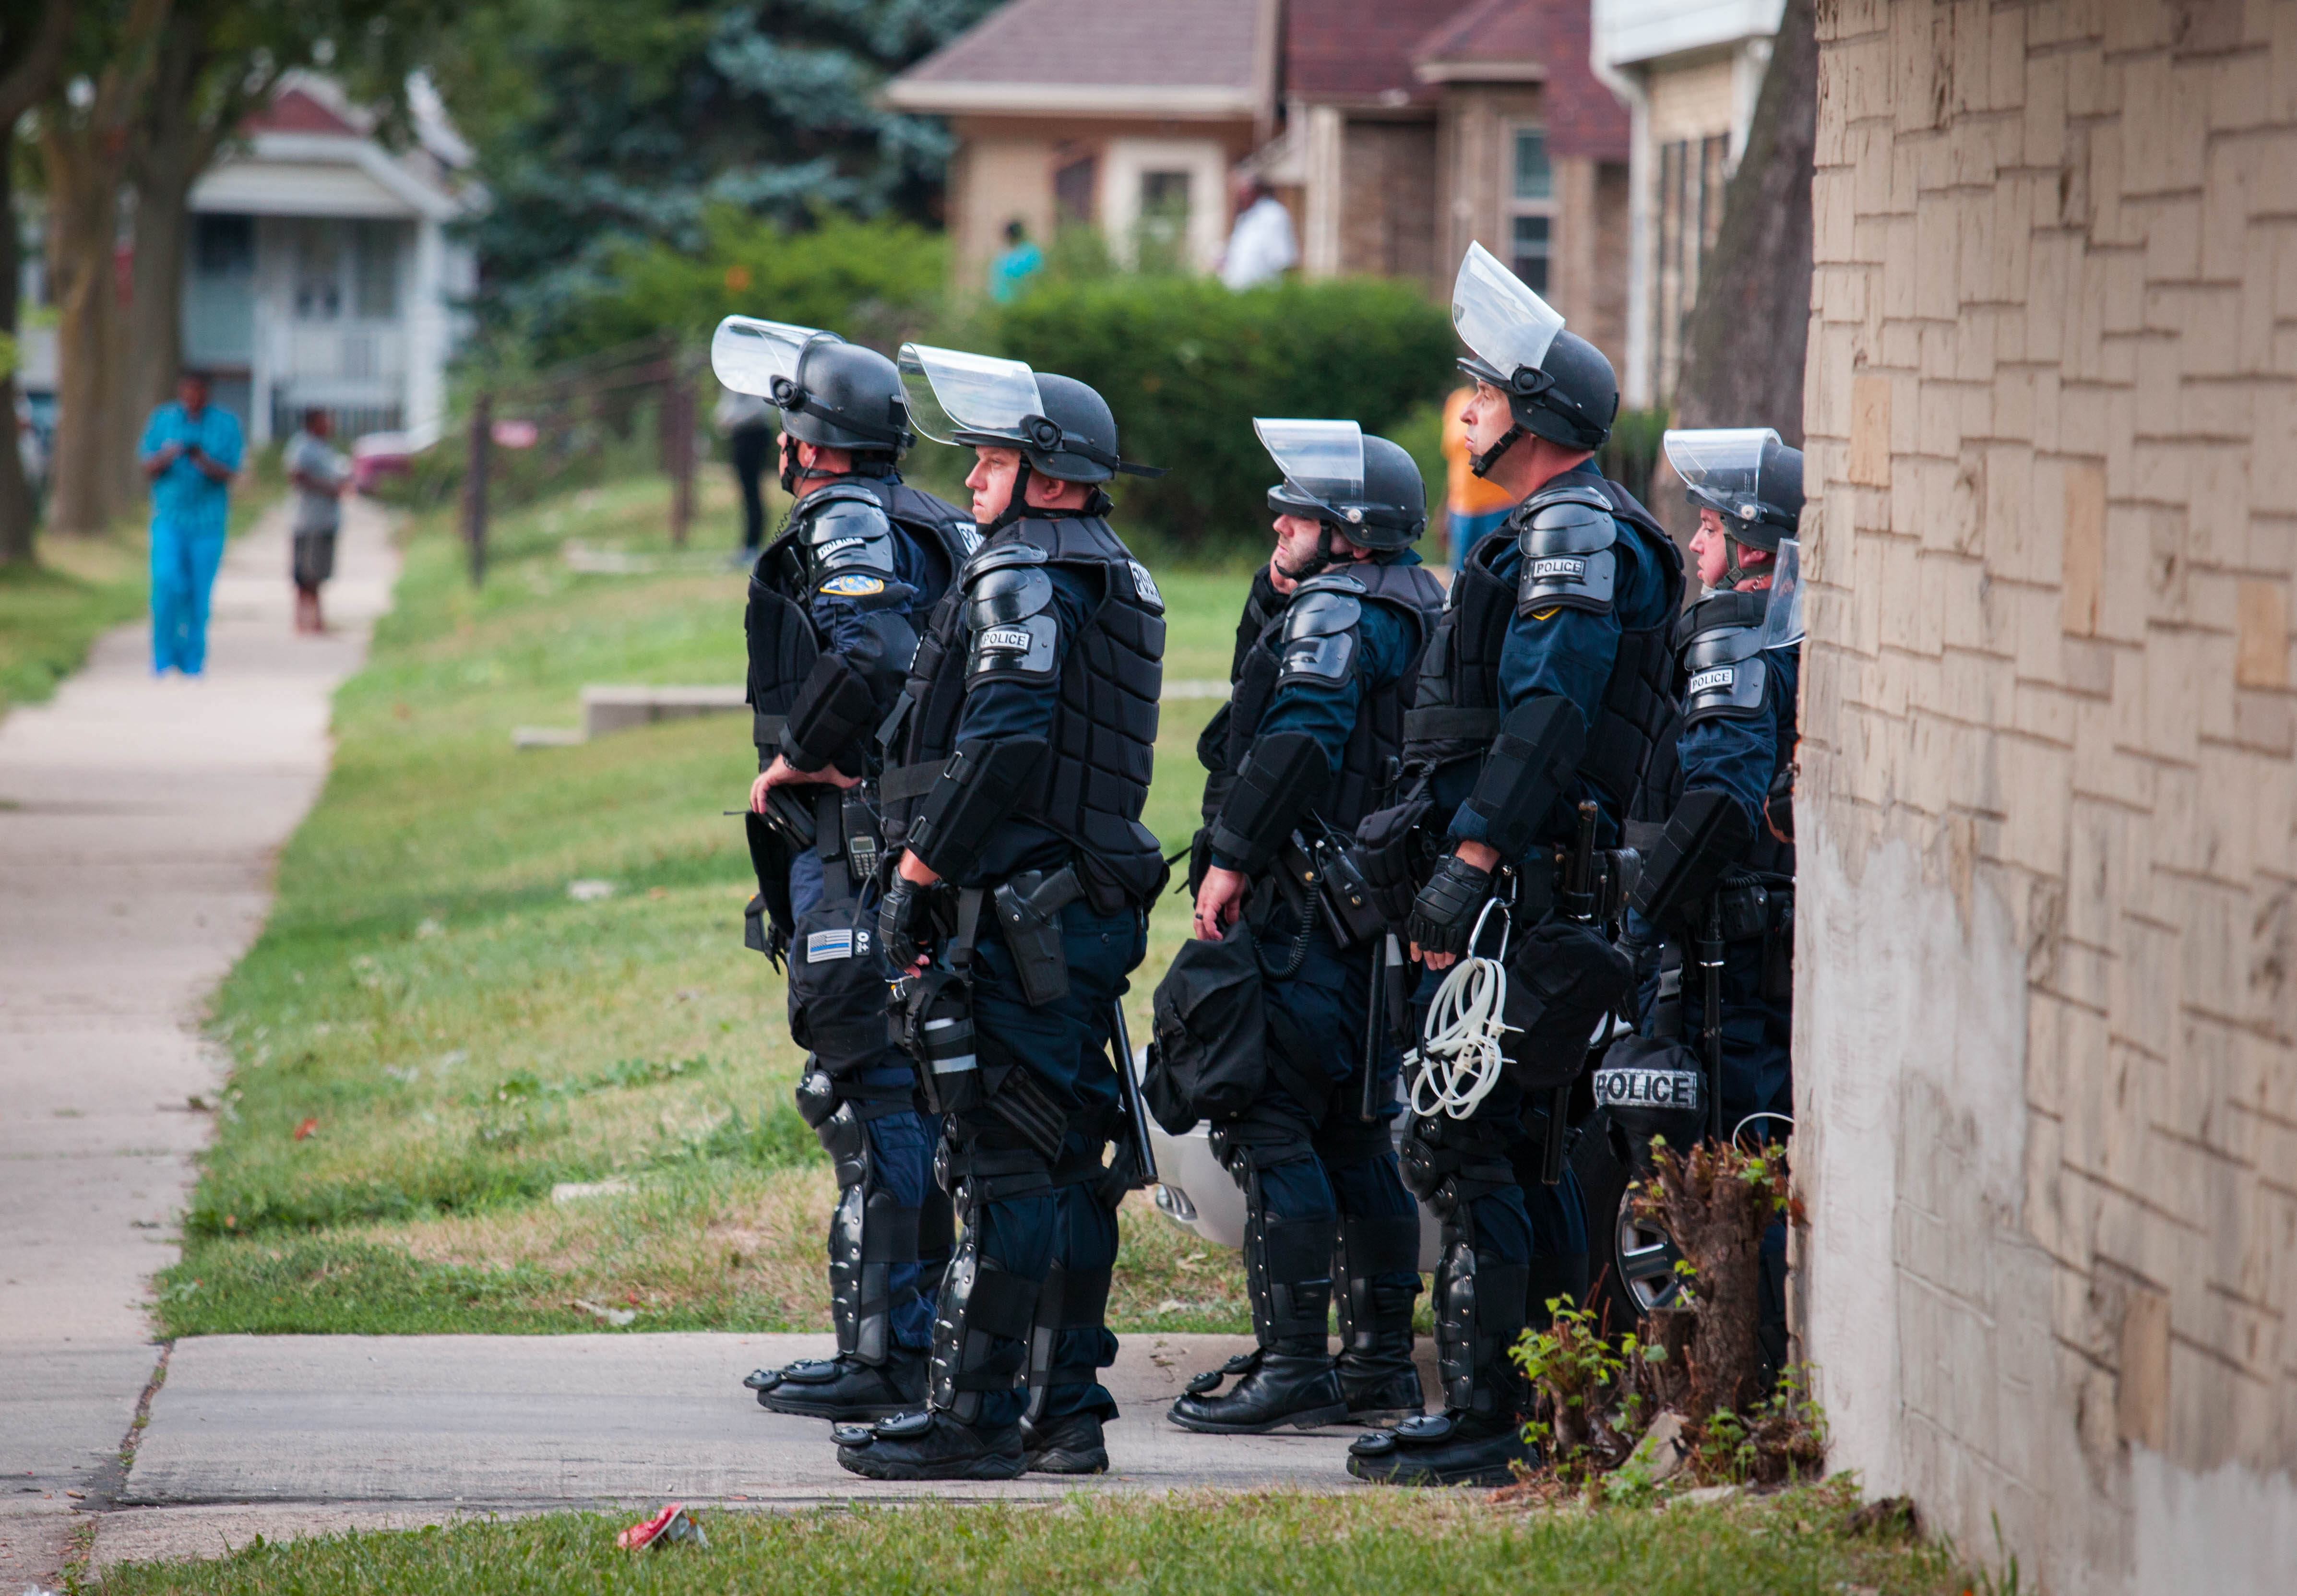 Police in riot gear wait in an alley after a second night of clashes between protestors and police in Milwaukee, Wisc., on Aug. 15, 2016.